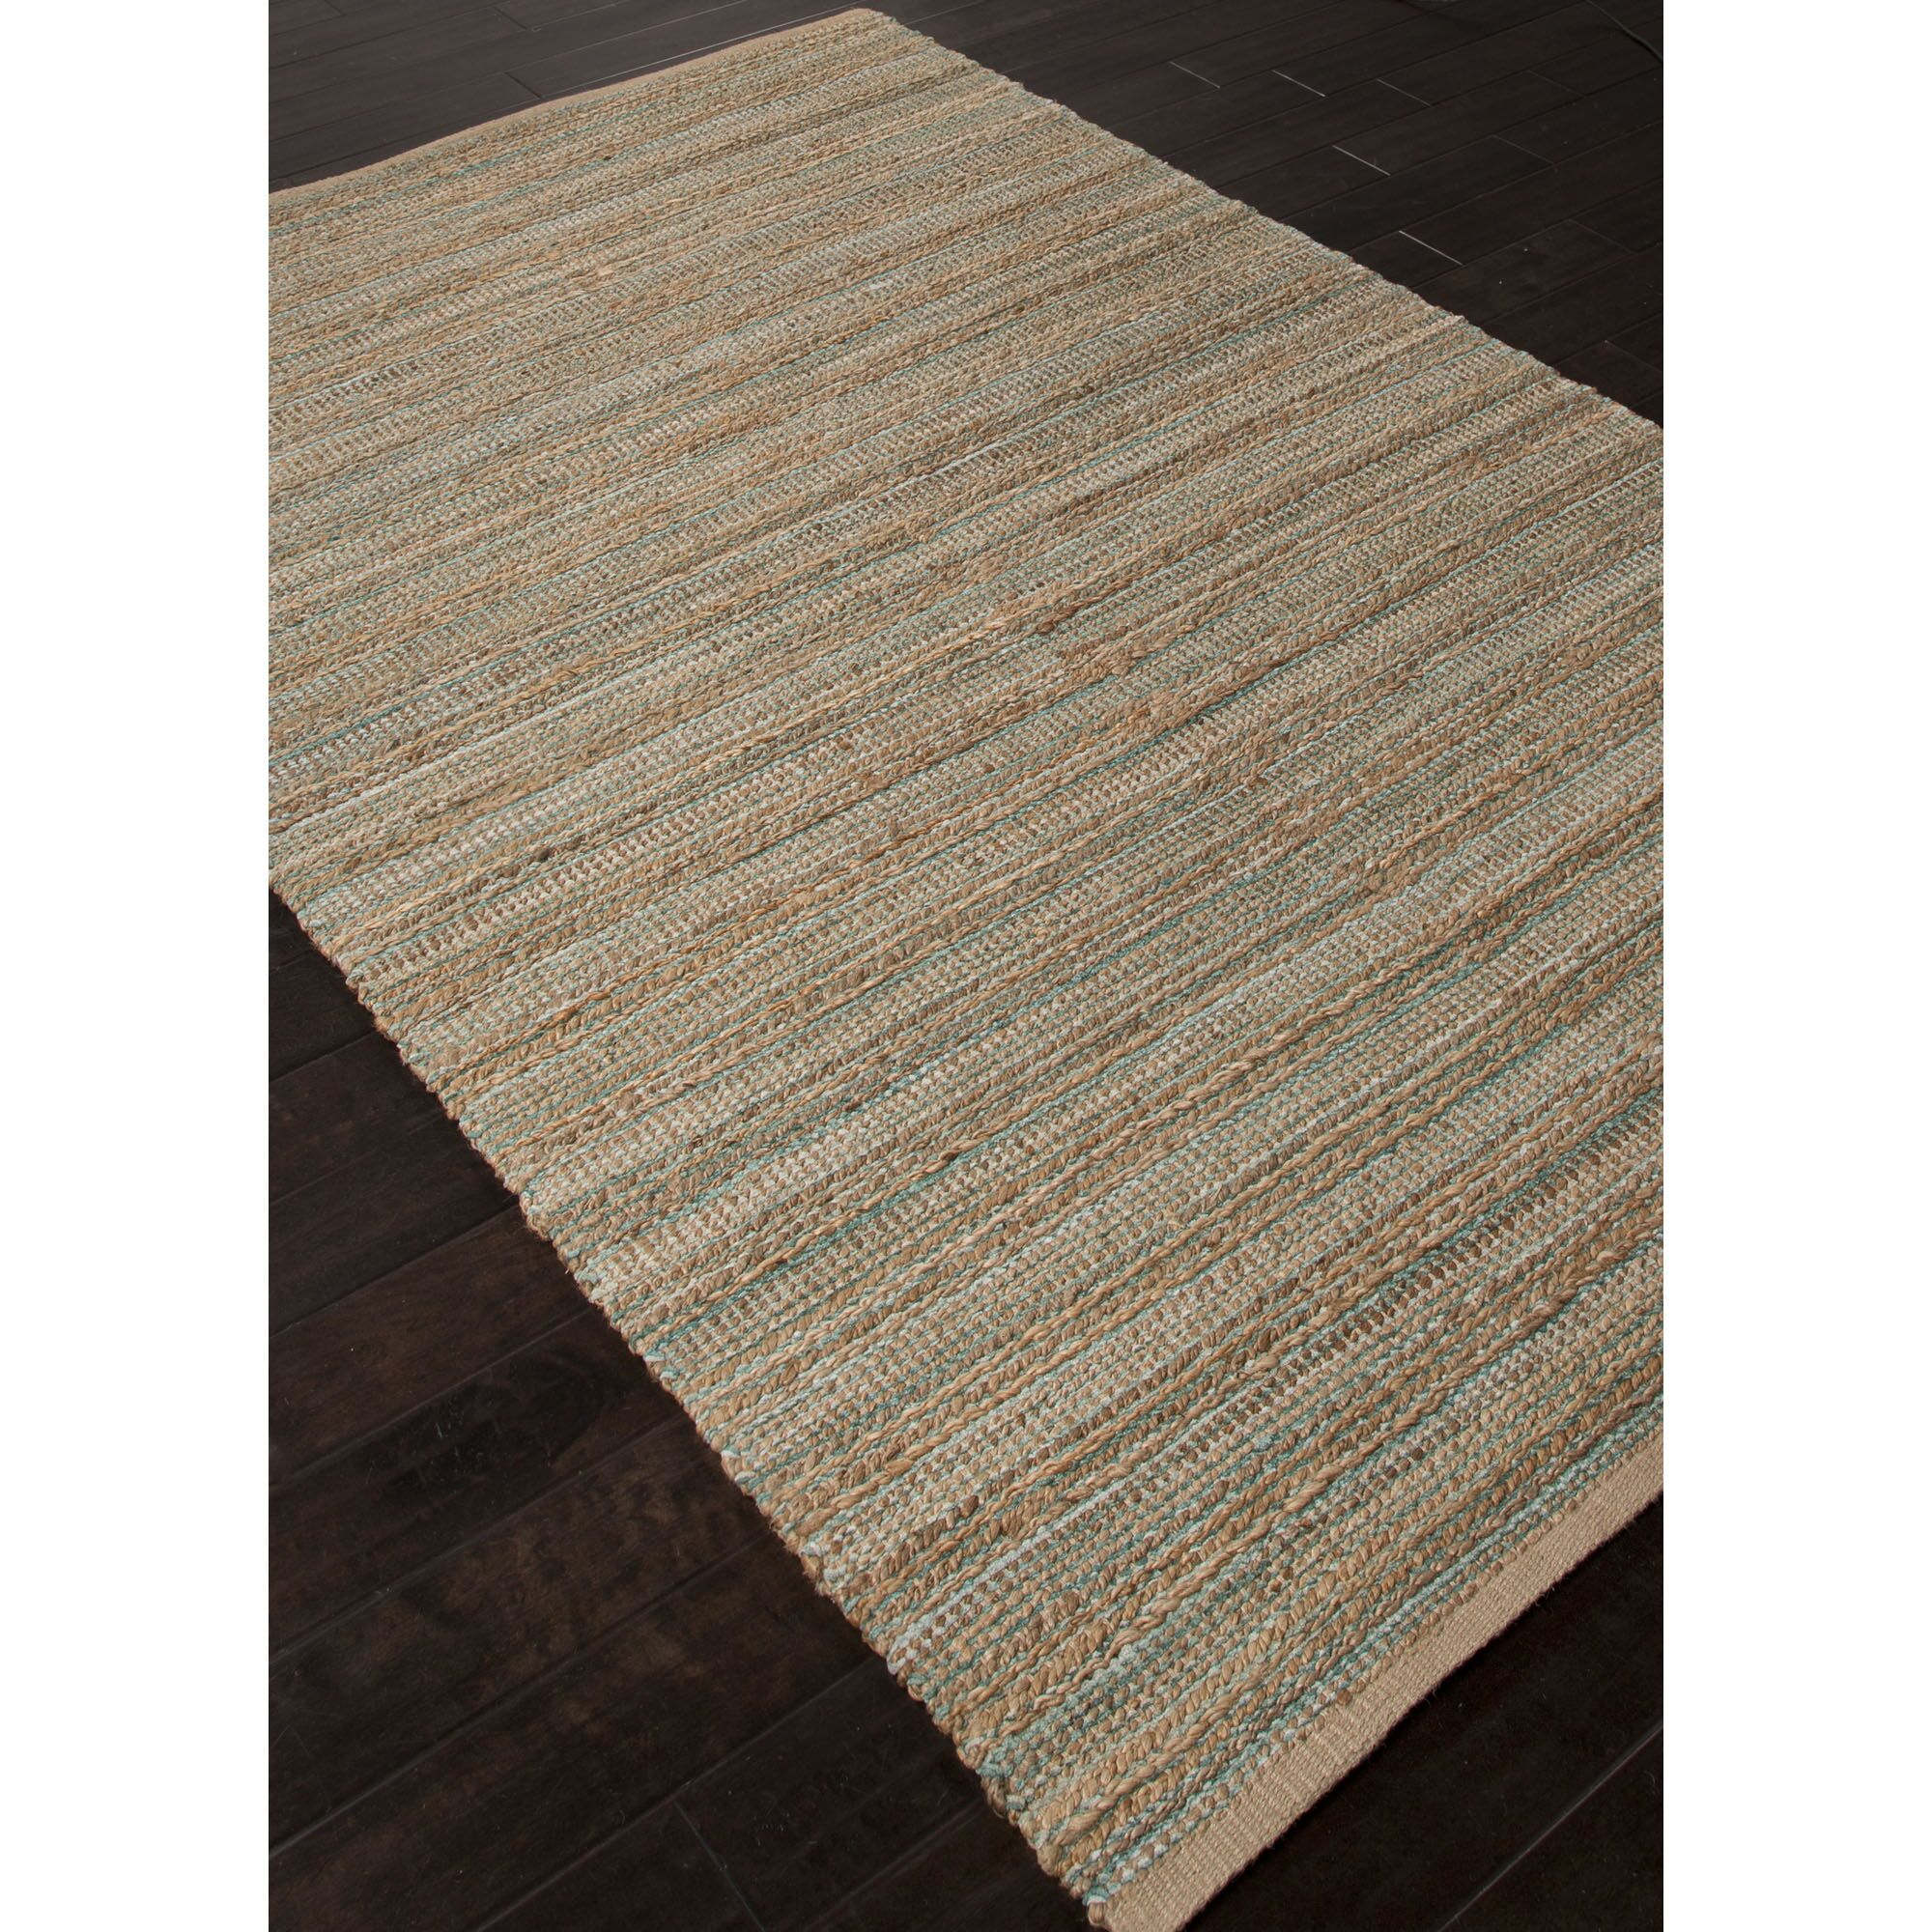 Ina Hand-Woven Taupe/Beige Area Rug Rug Size: Rectangle 3'6